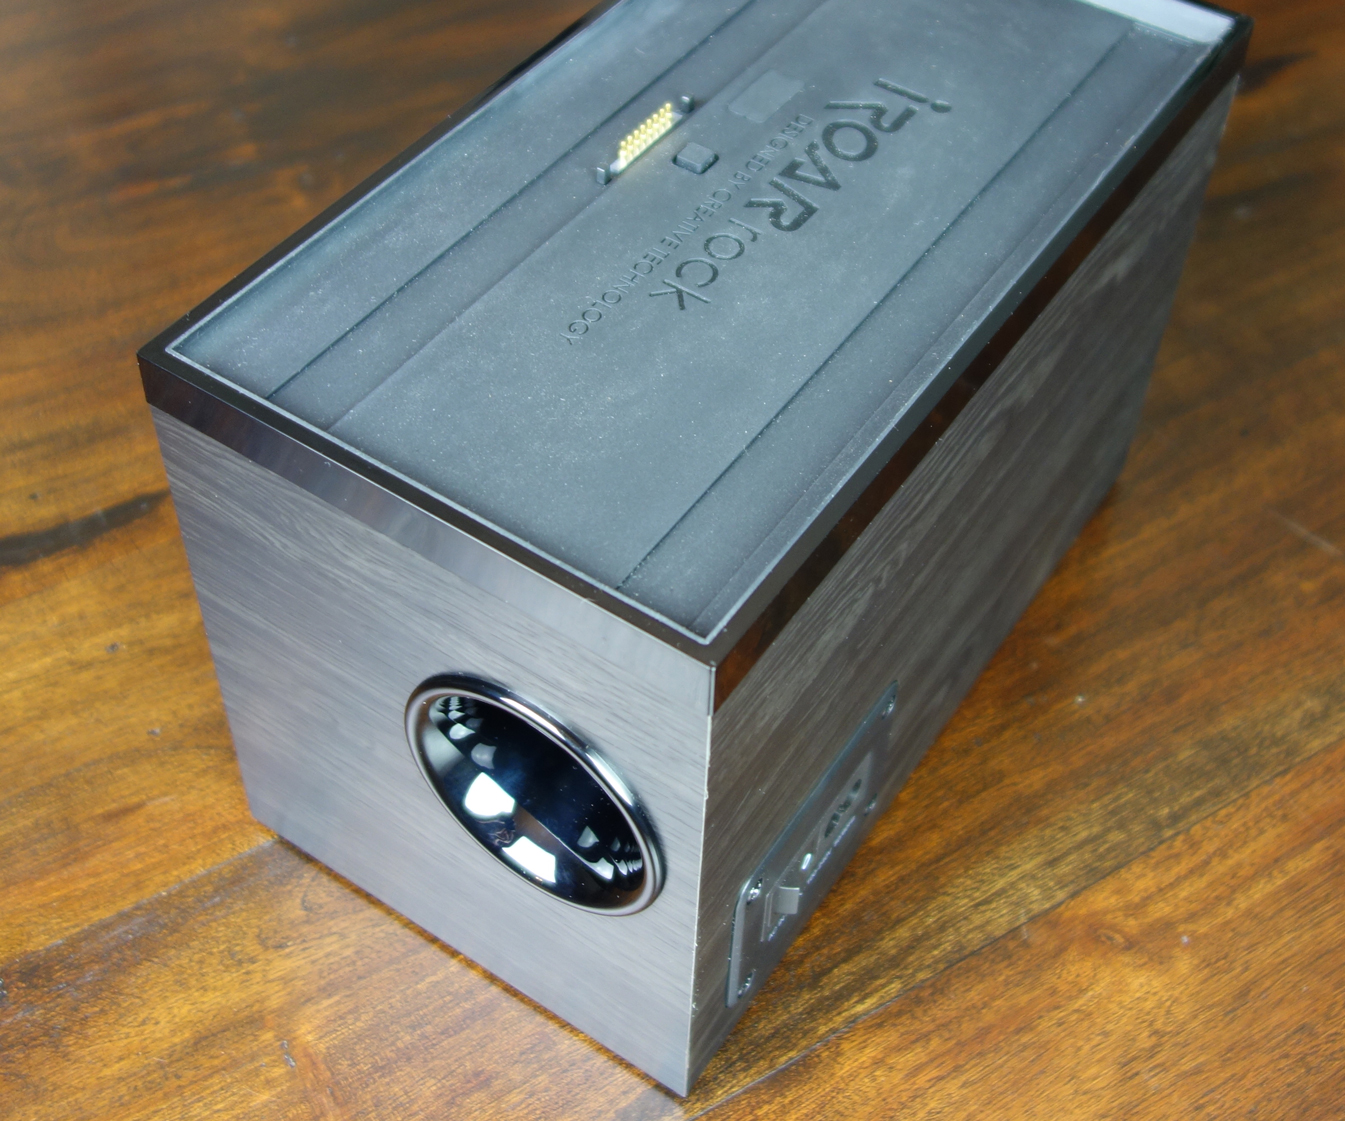 Creative iRoar Rock Docking Subwoofer port & power switch